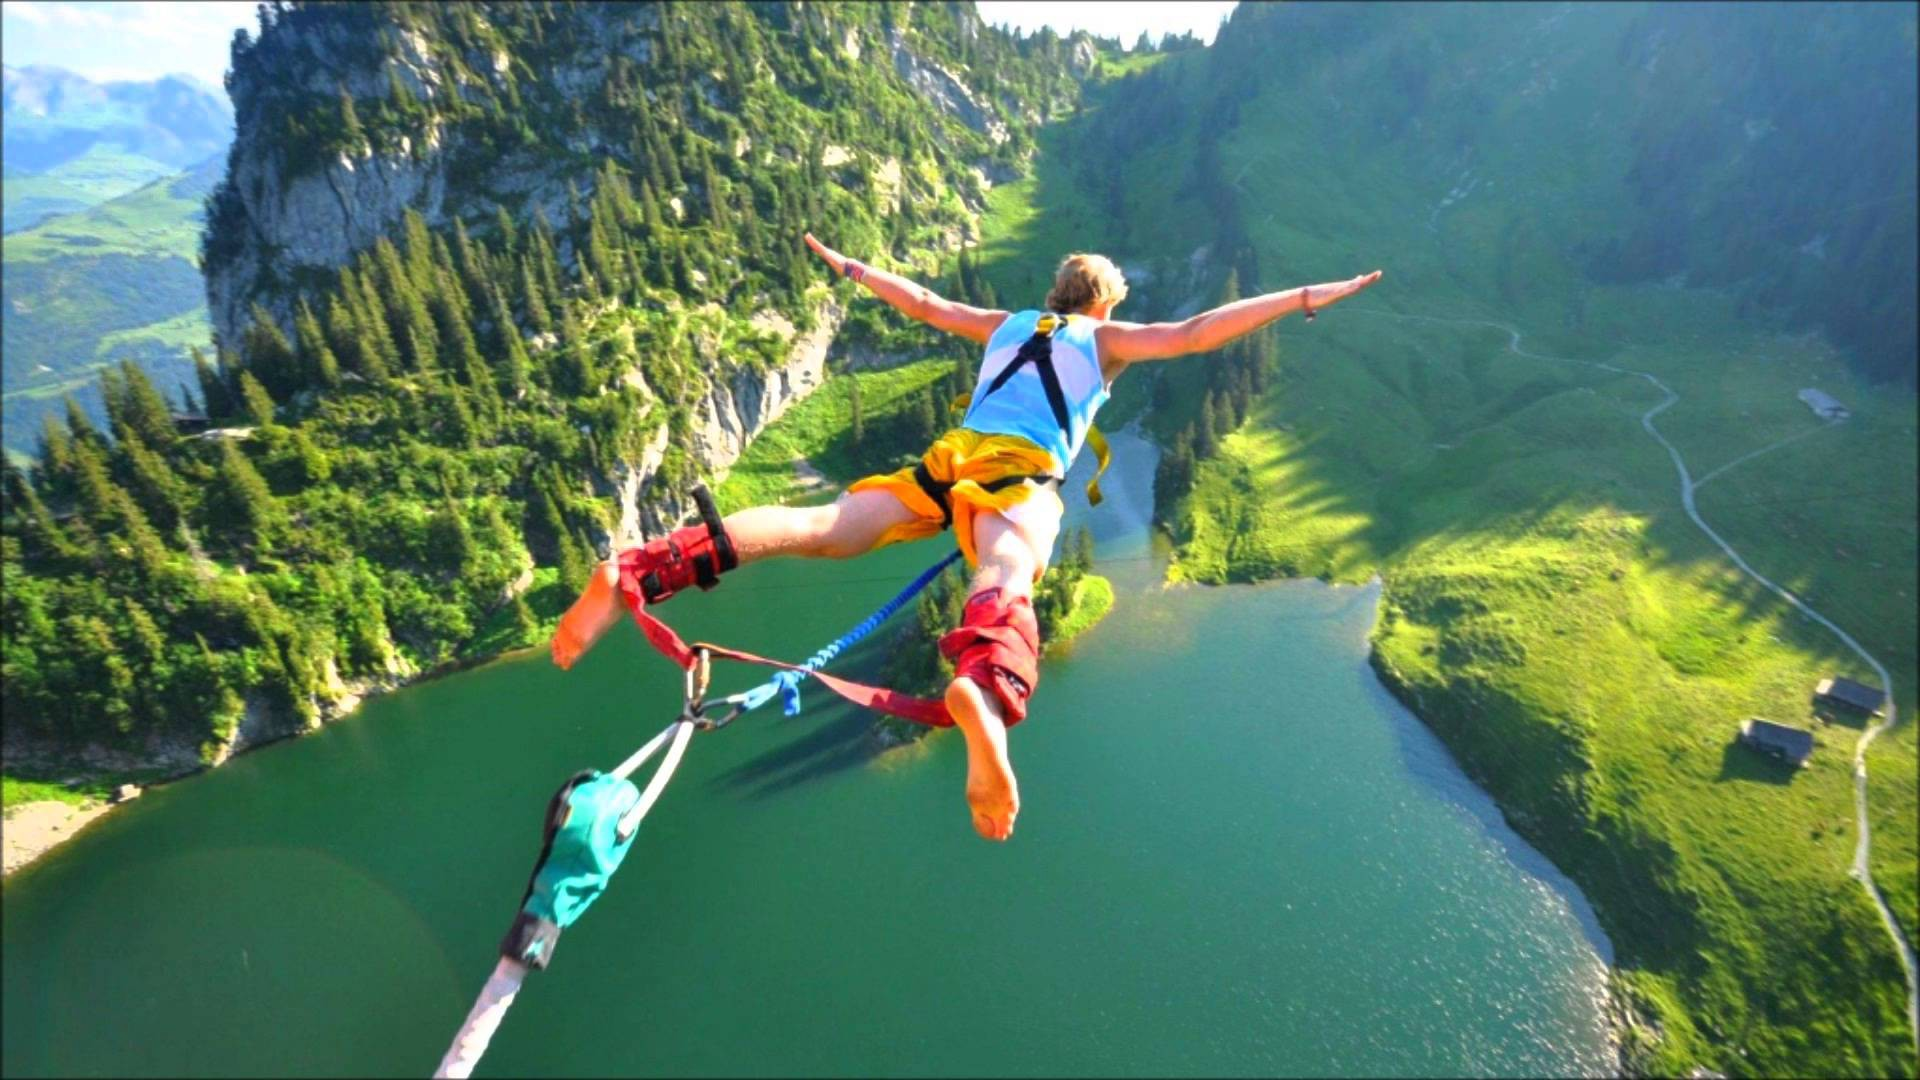 Bungy jumping galleries 17